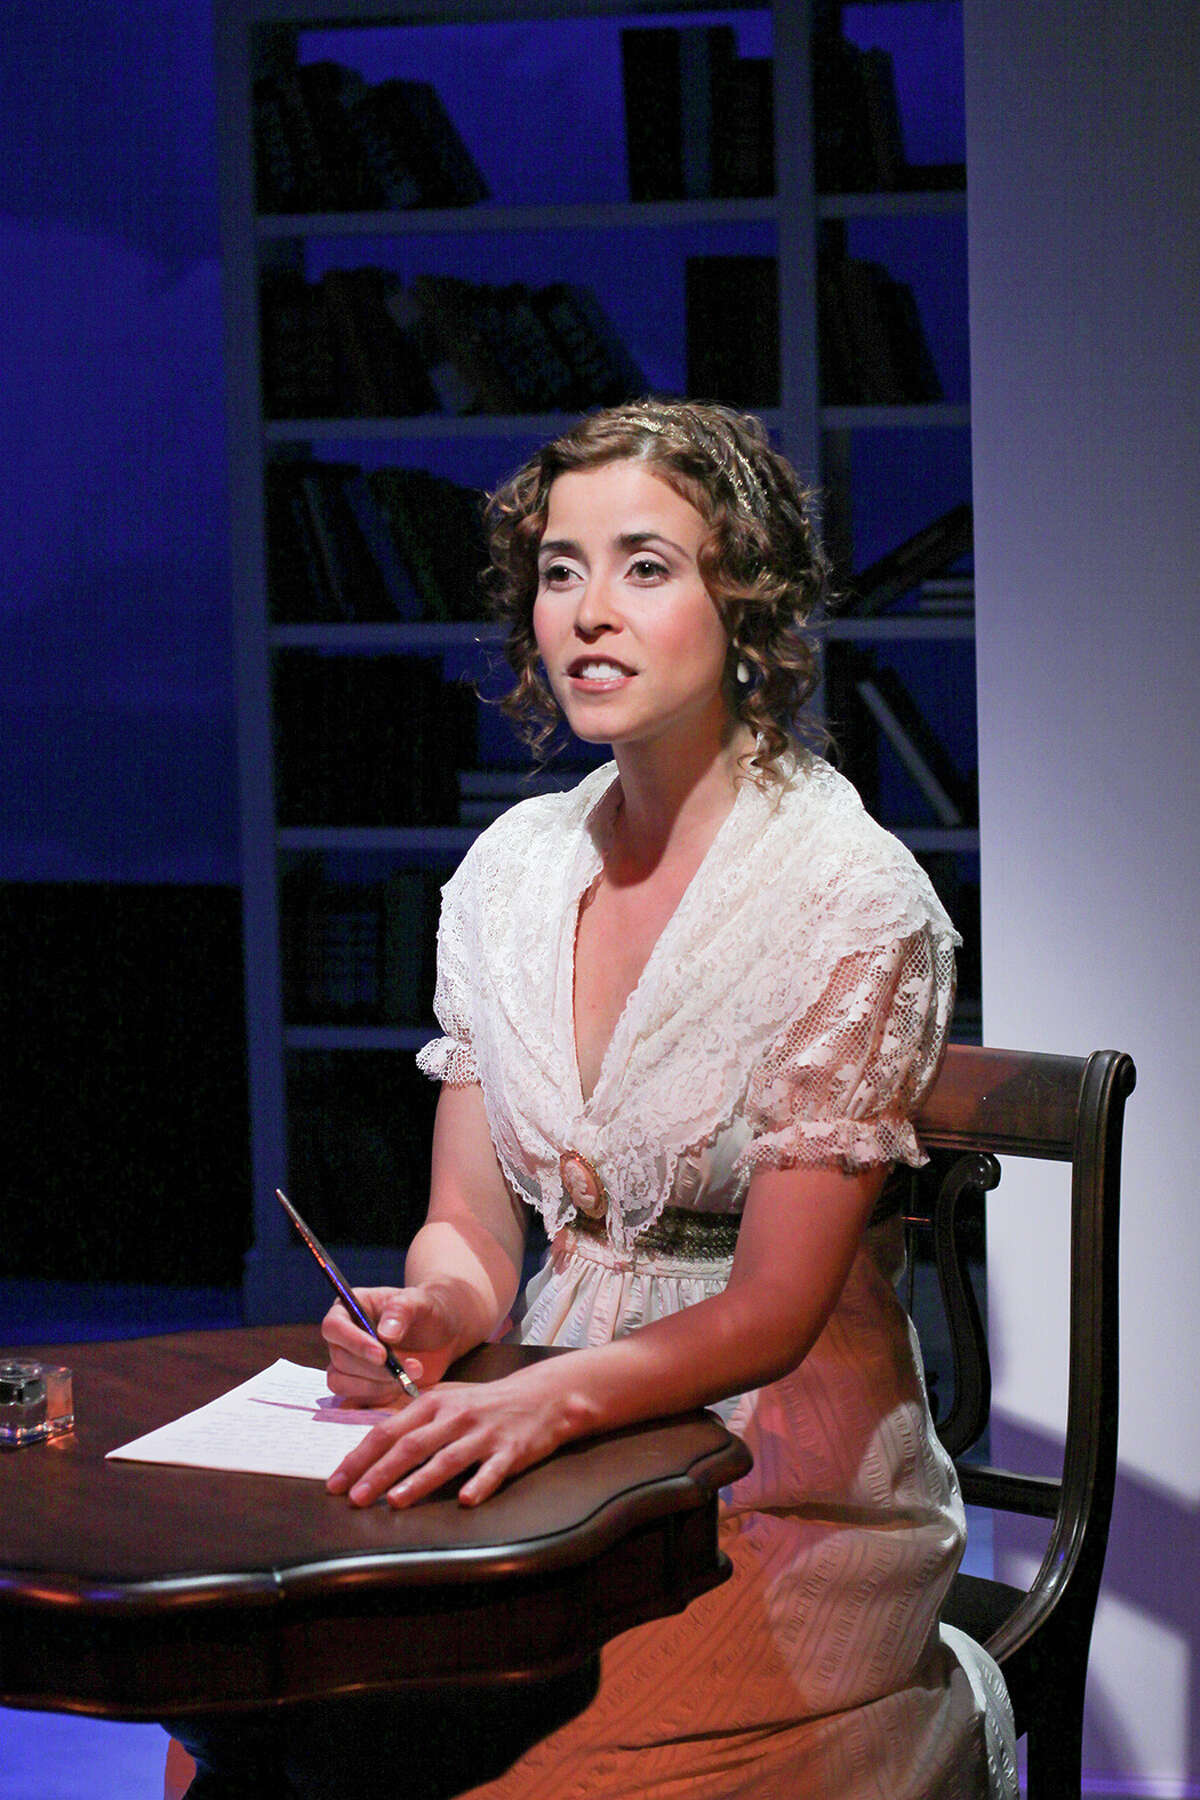 Jane Austen, played by actress Gisela Chipe, pens a letter revealing her true love in Pride@Prejudice: a romantic deconstruction, playing Sept. 28 - Oct. 28, 2012, at Capital Rep, 111 N. Pearl St, Albany. (Joseph Schuyler)